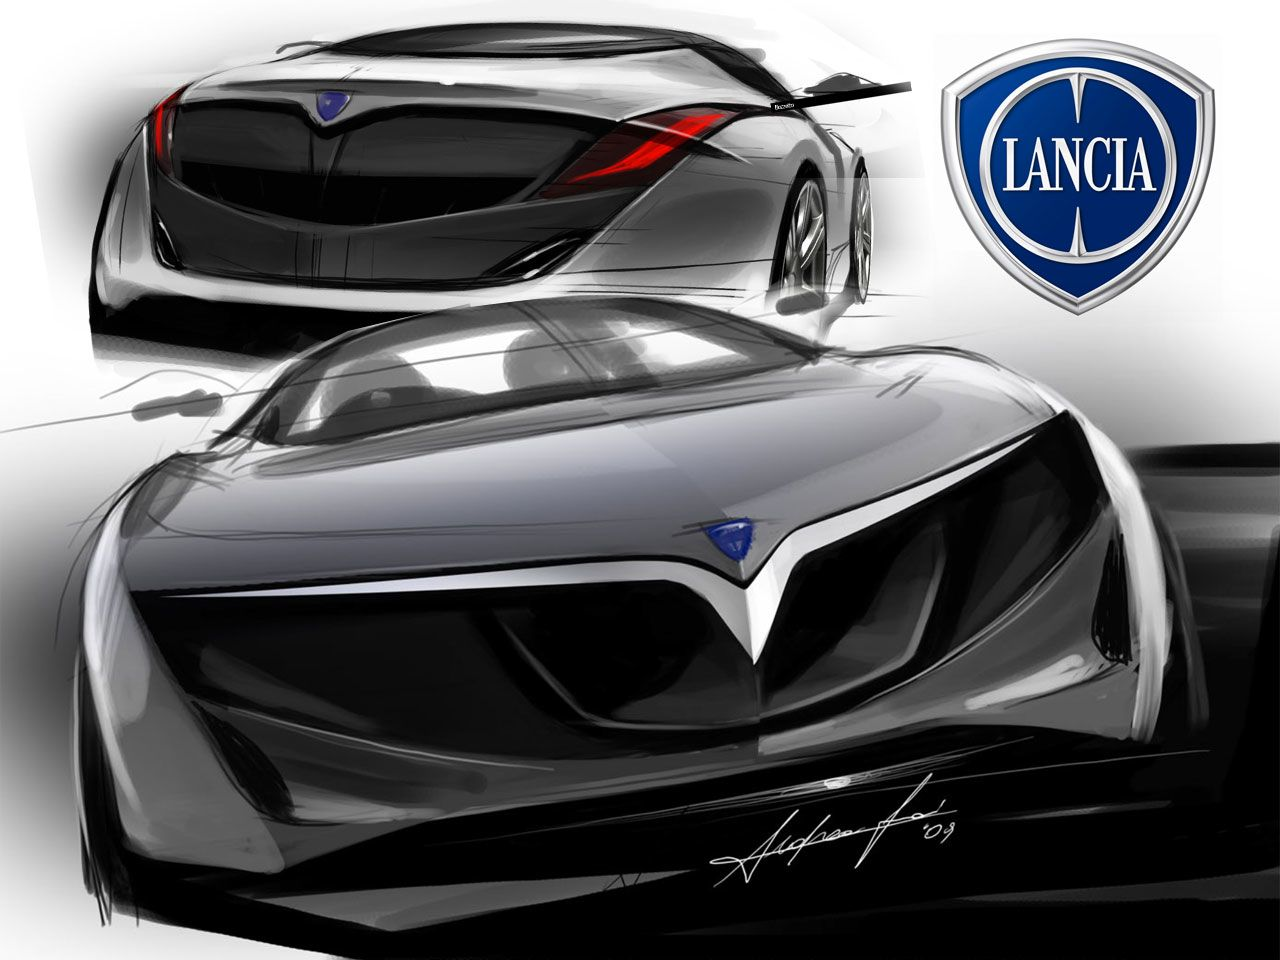 lancia design sketches  caradvice